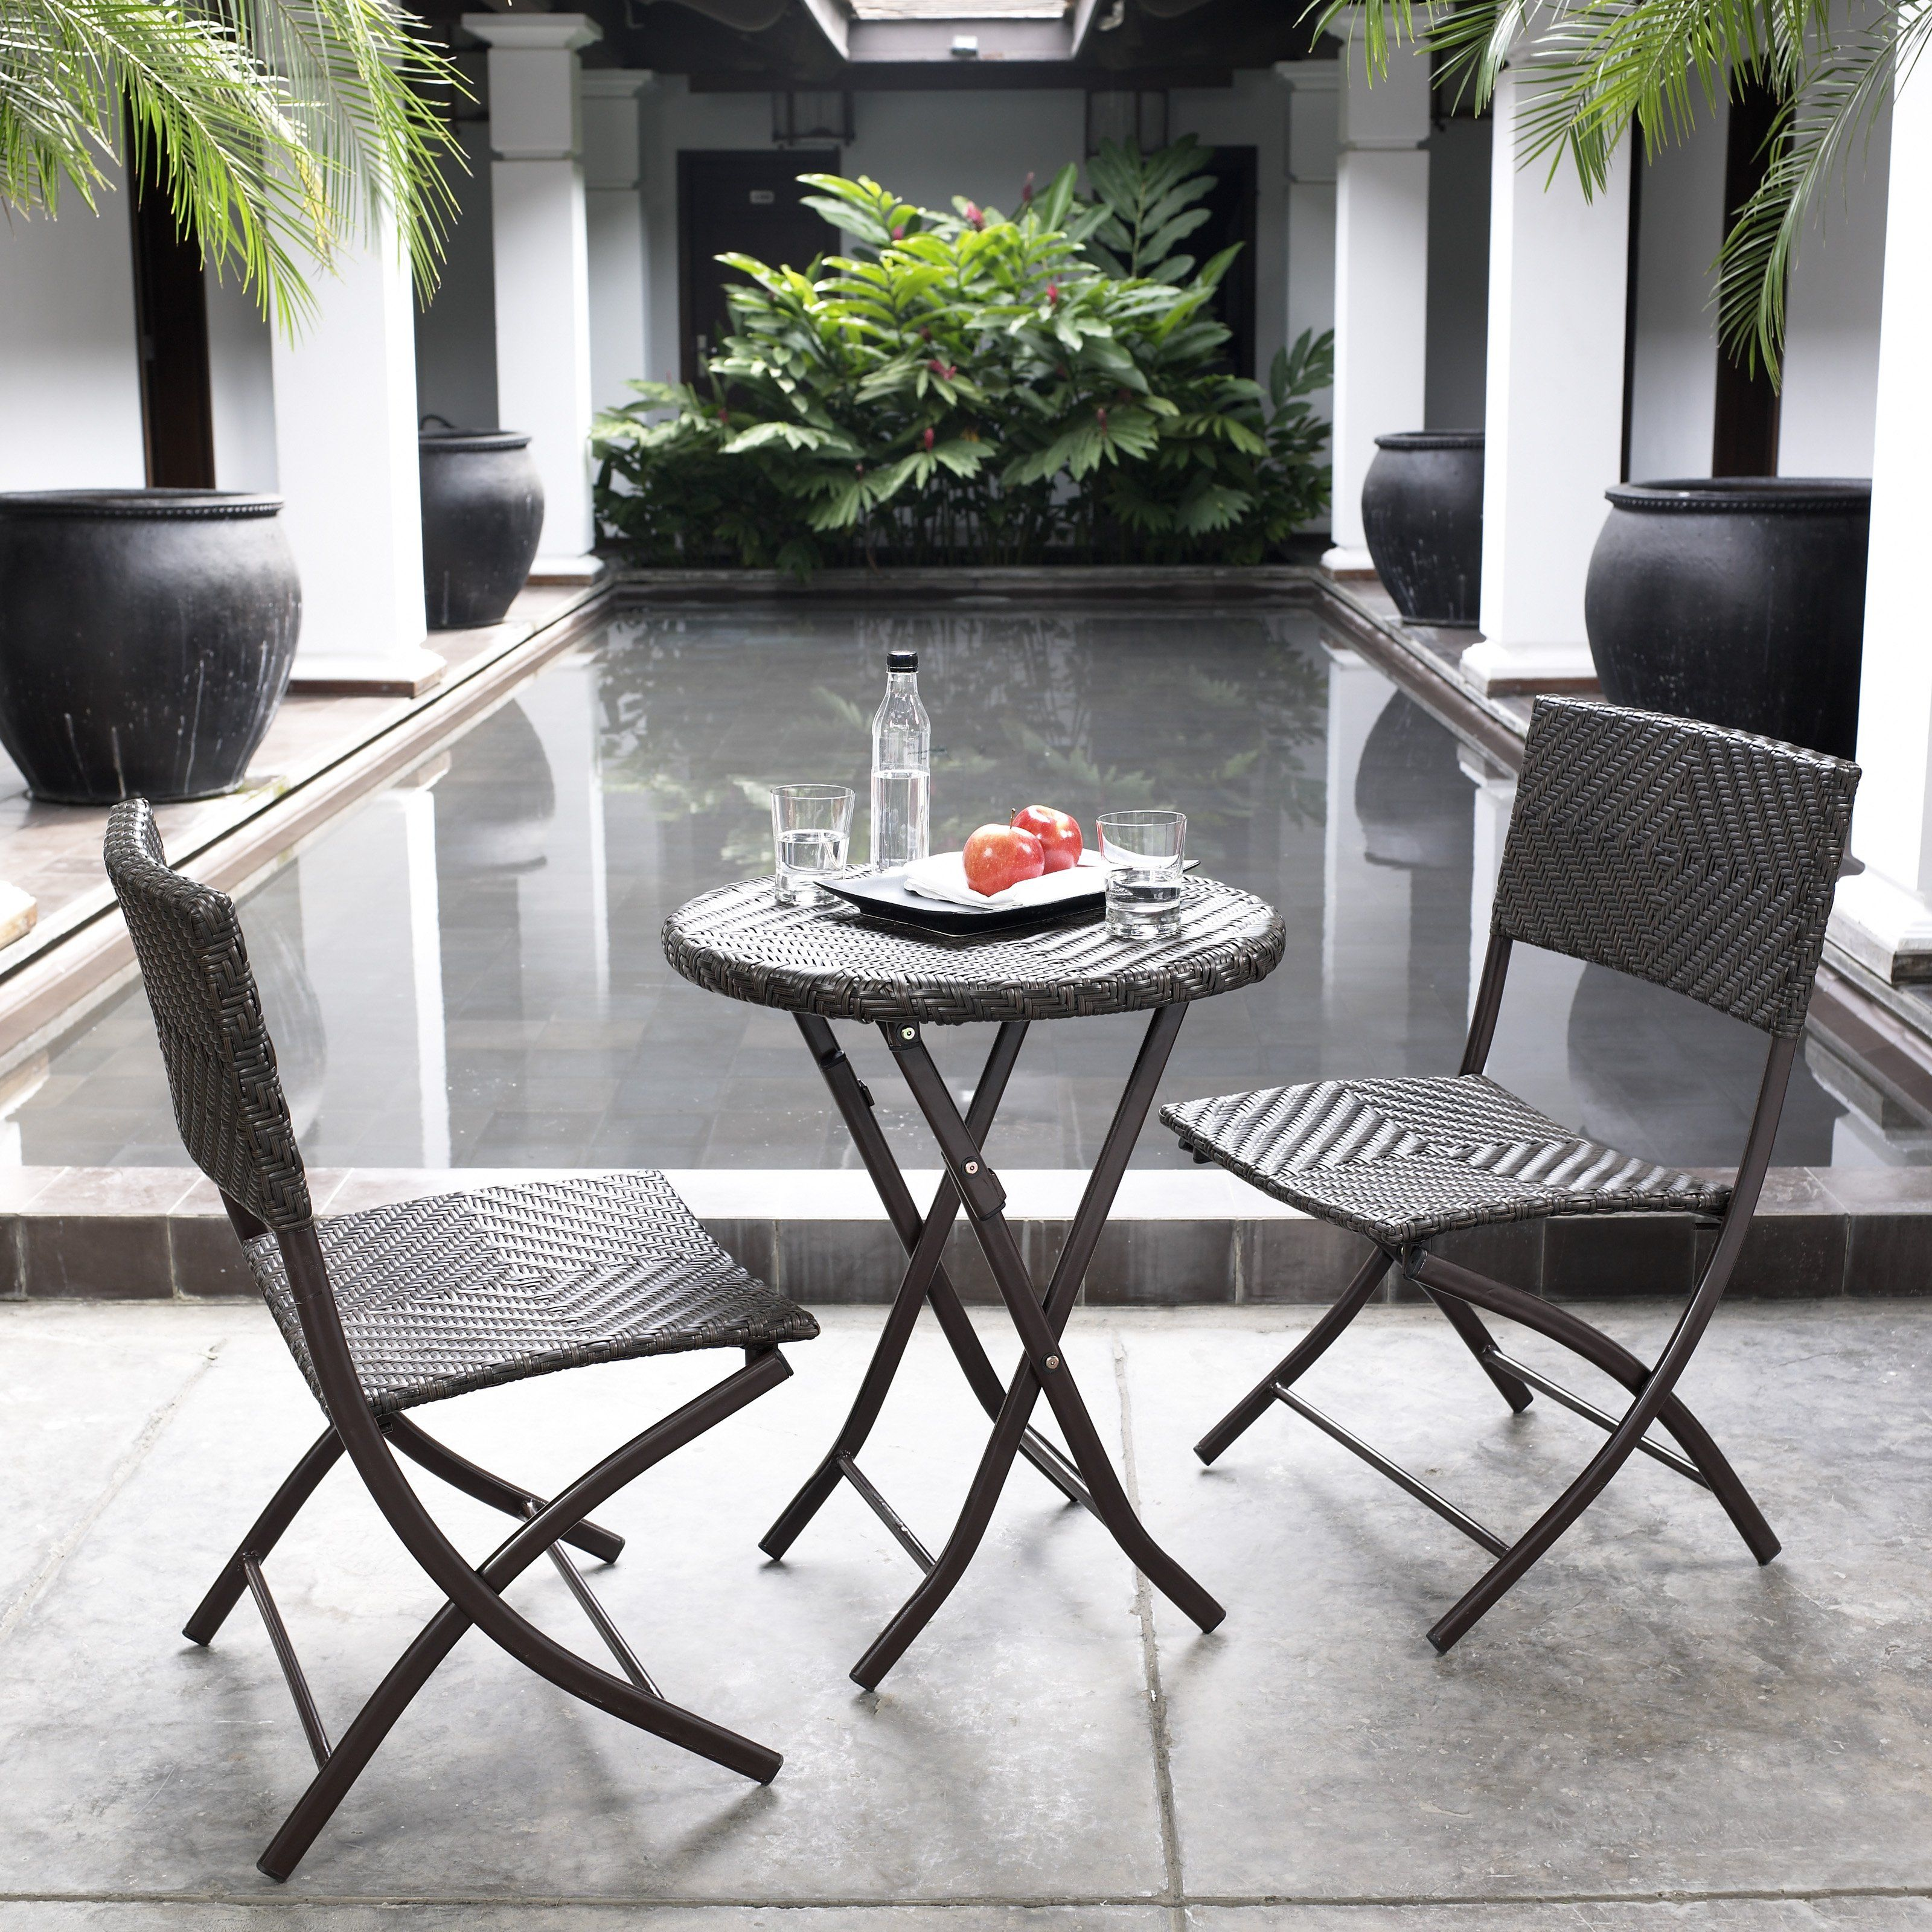 Have to have it. Belham Living All-Weather Wicker Patio Bistro Set - $199.99 @hayneedle.com